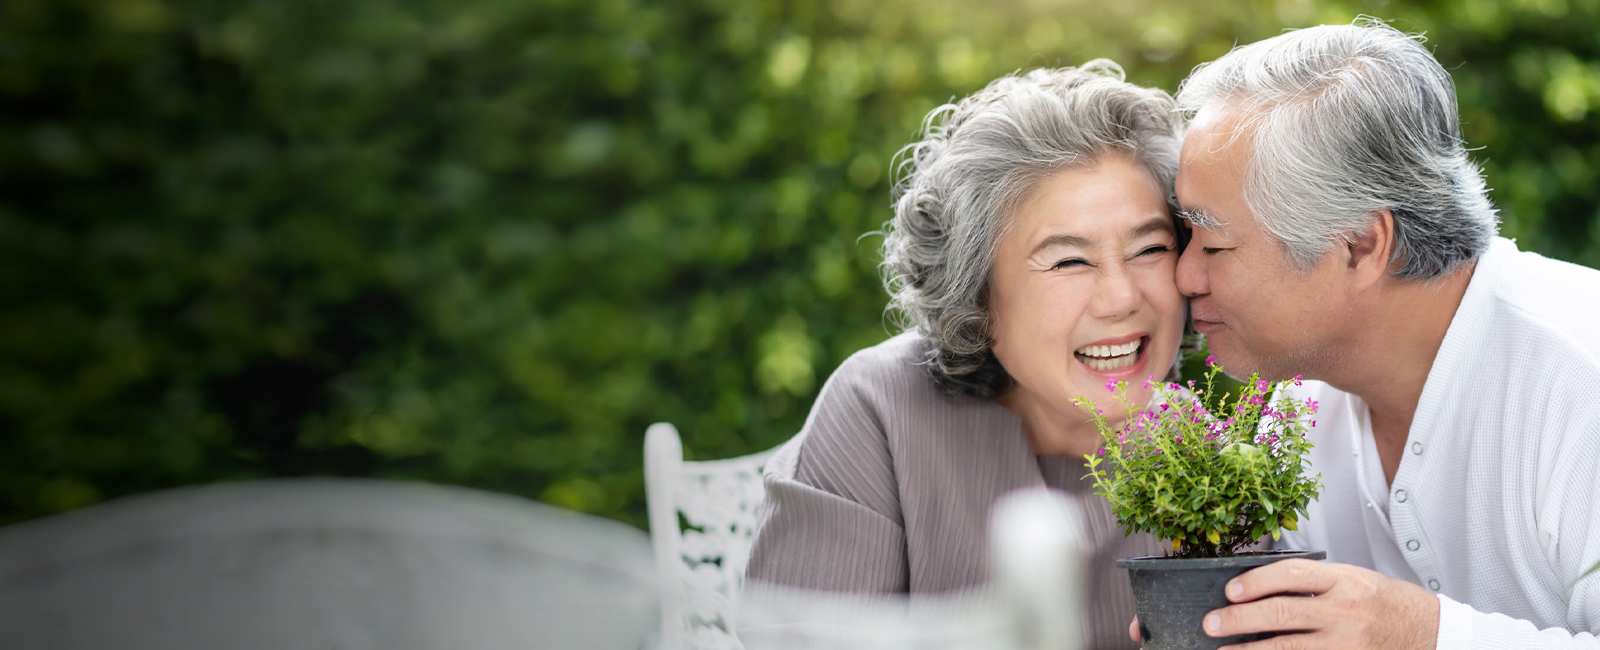 How to Plan Your Life for the Aging Society?